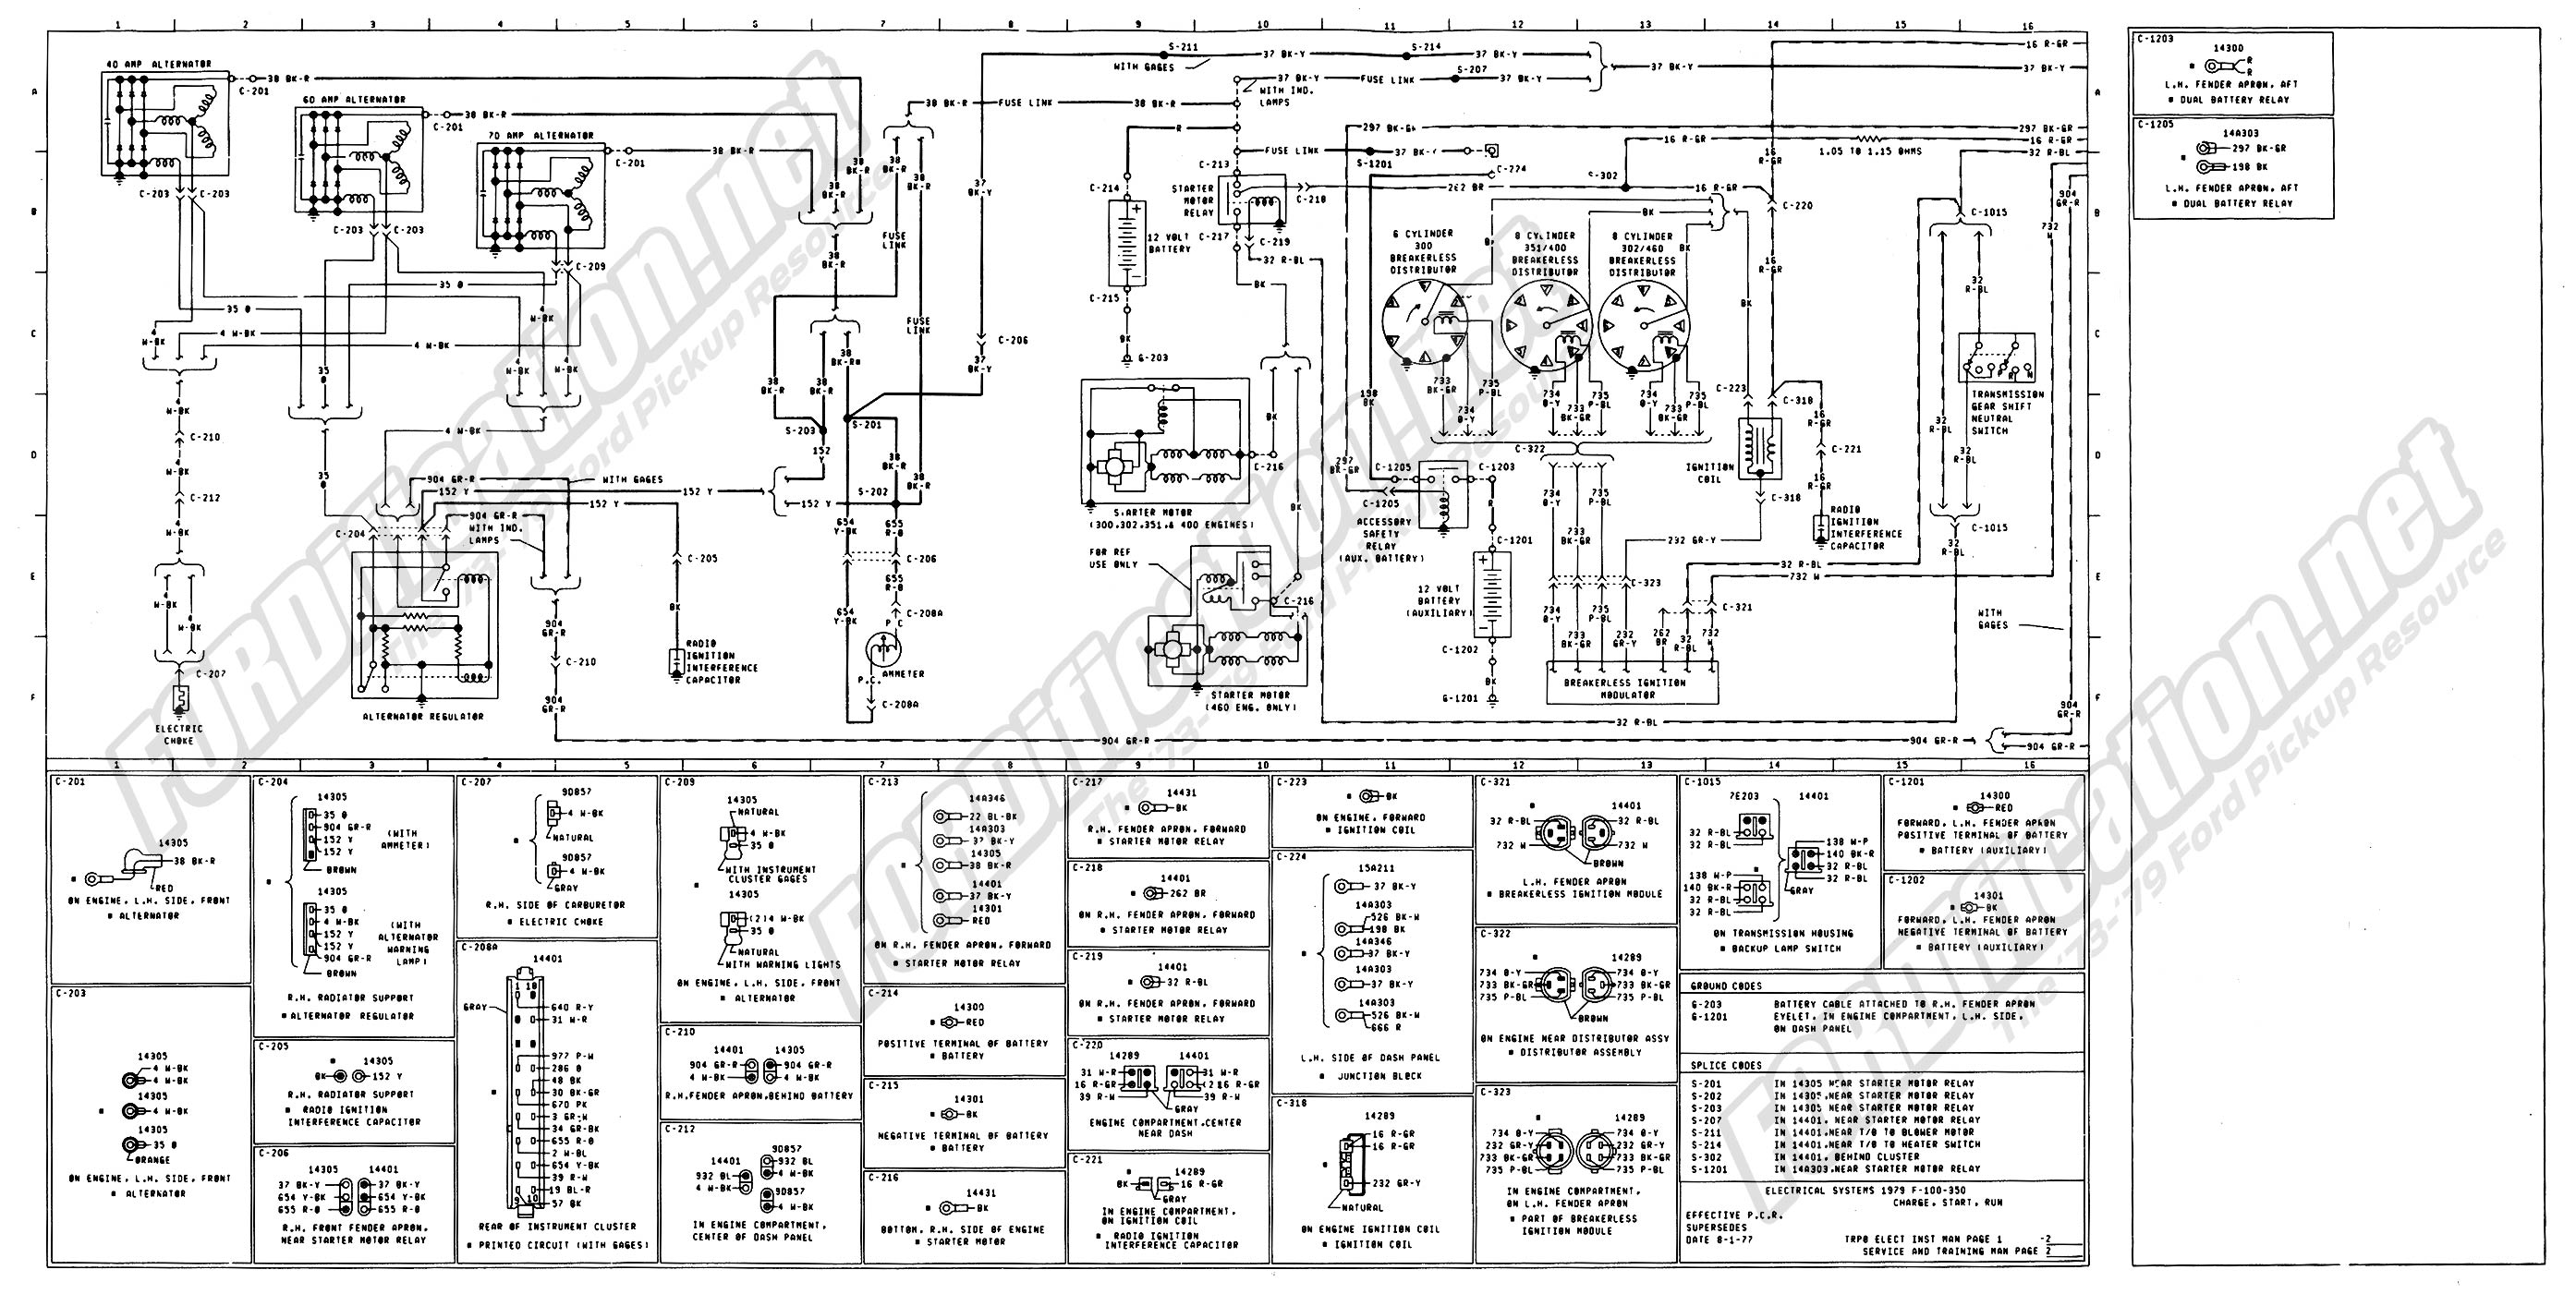 [WRG-4423] 1989 Ford E350 Transmission Wiring Diagram